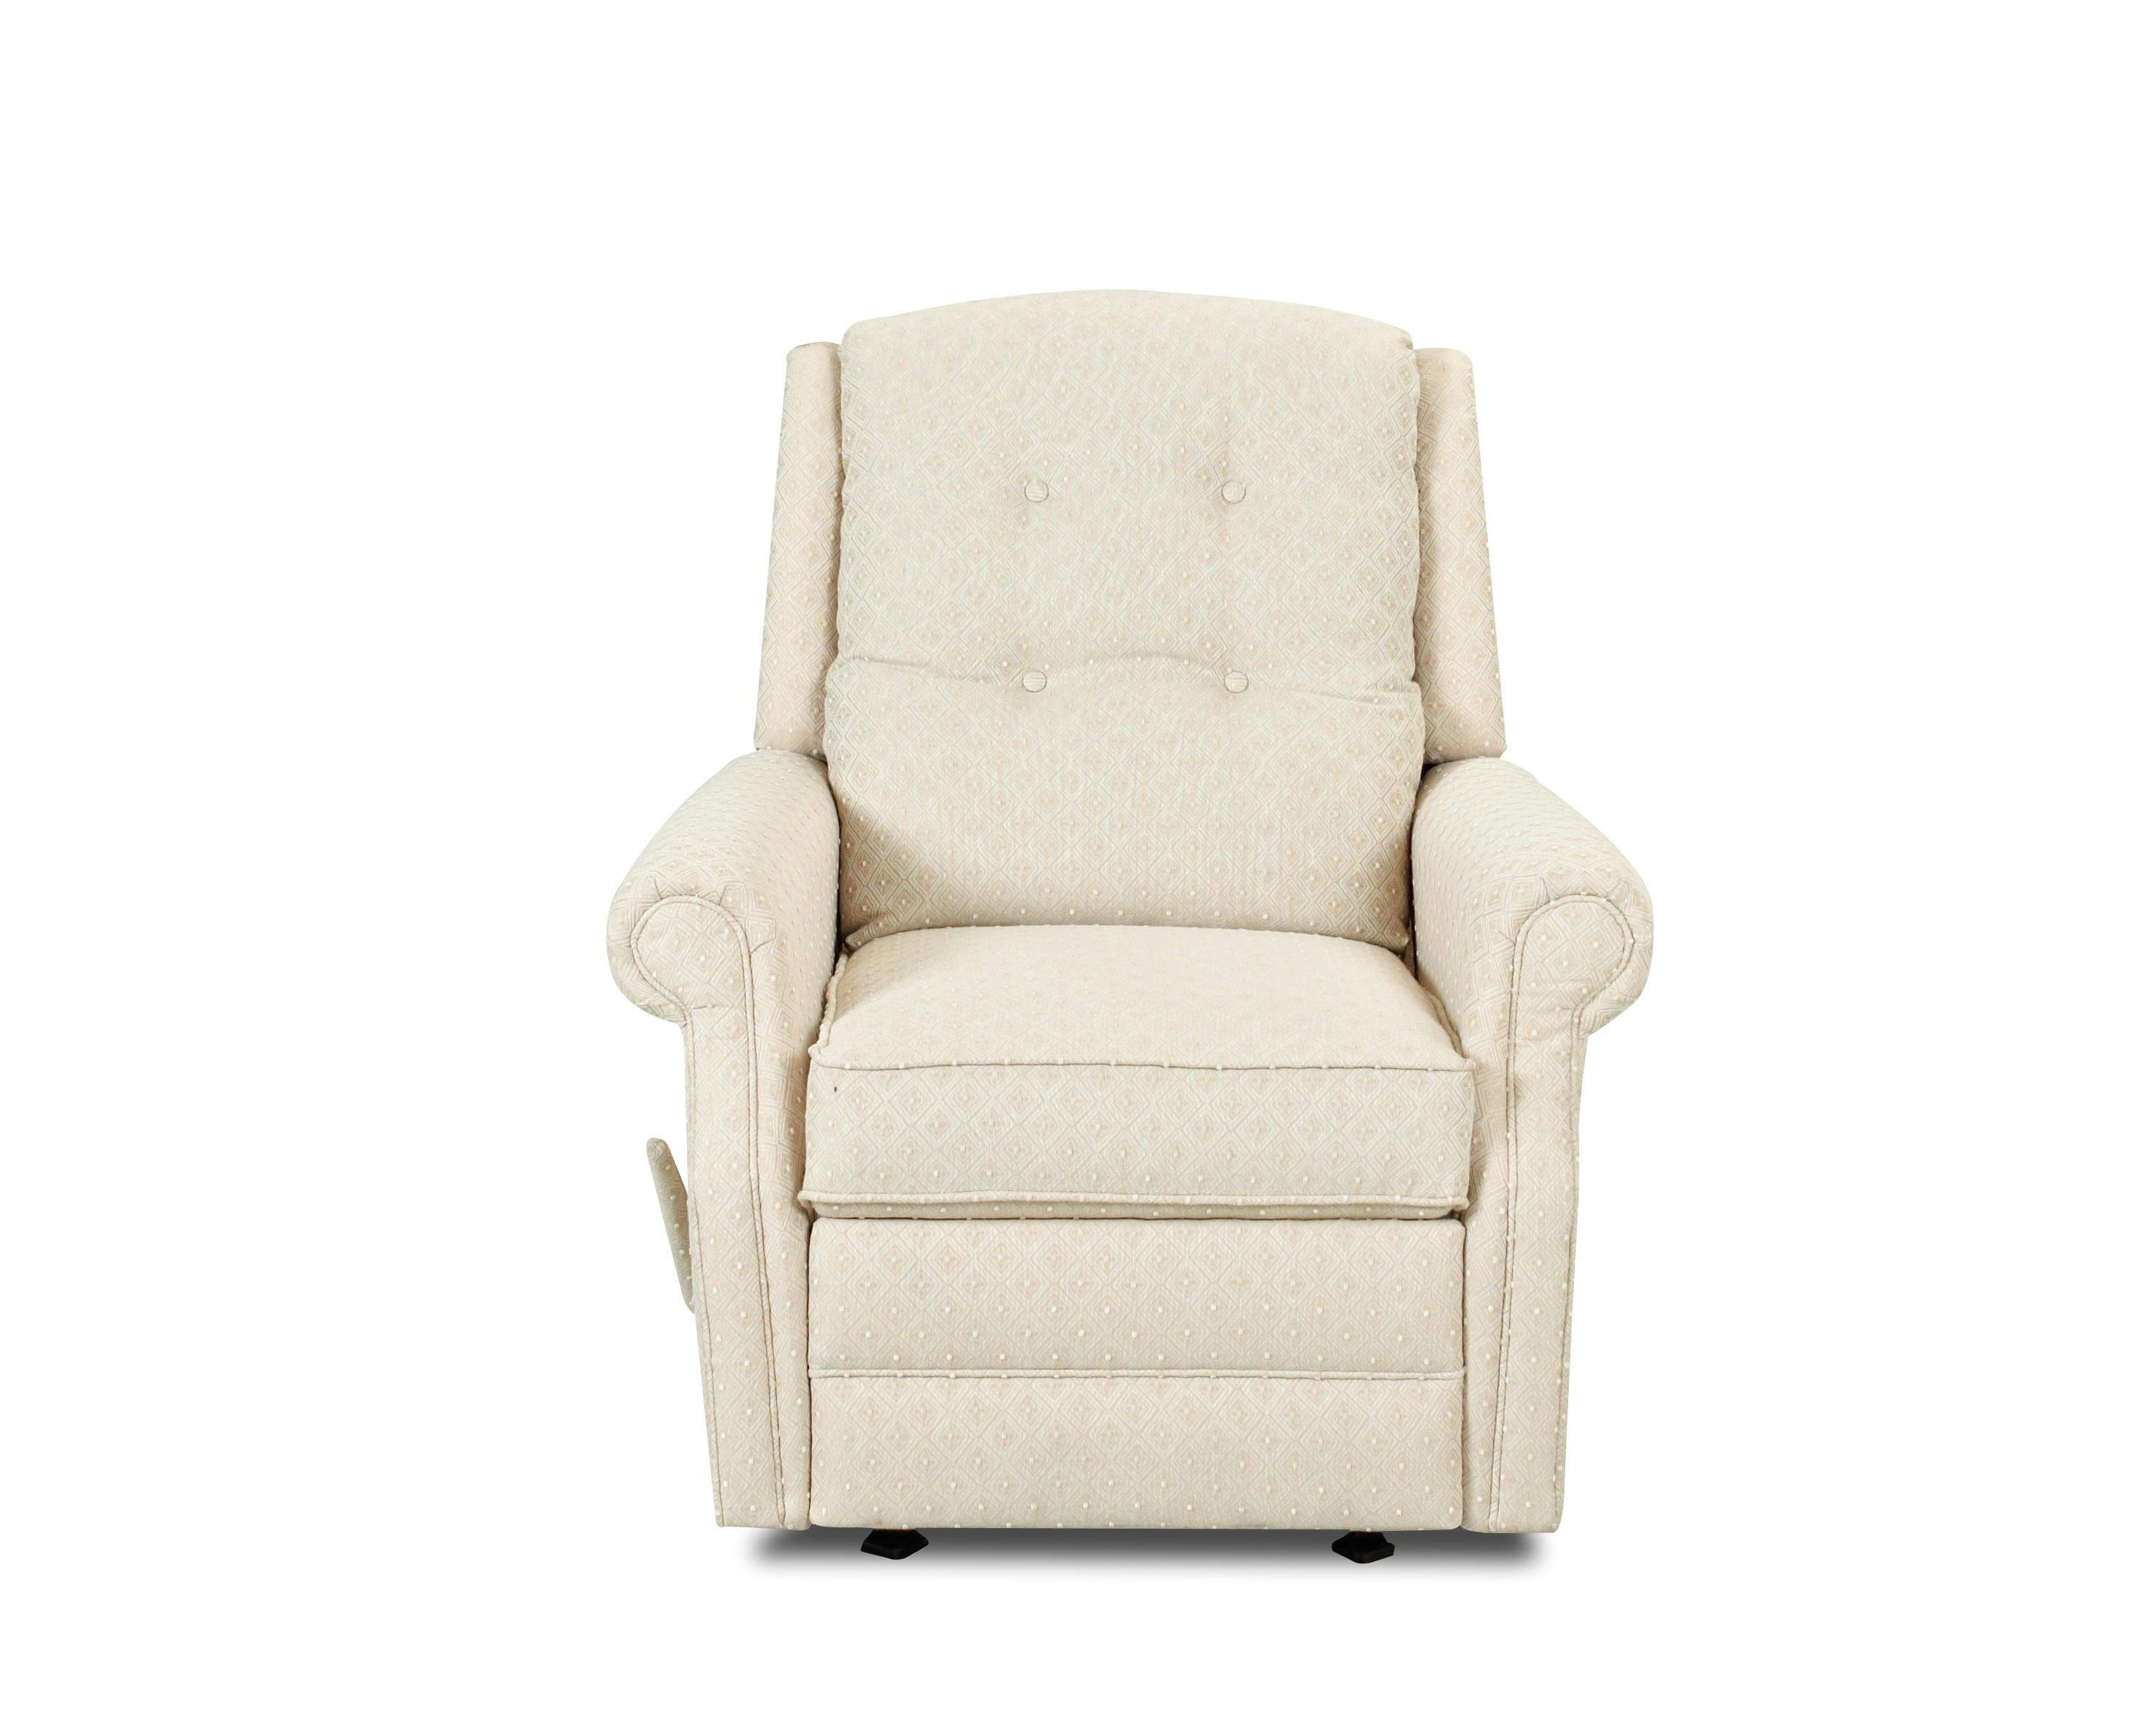 Transitional Manual Swivel Rocking Reclining Chair With